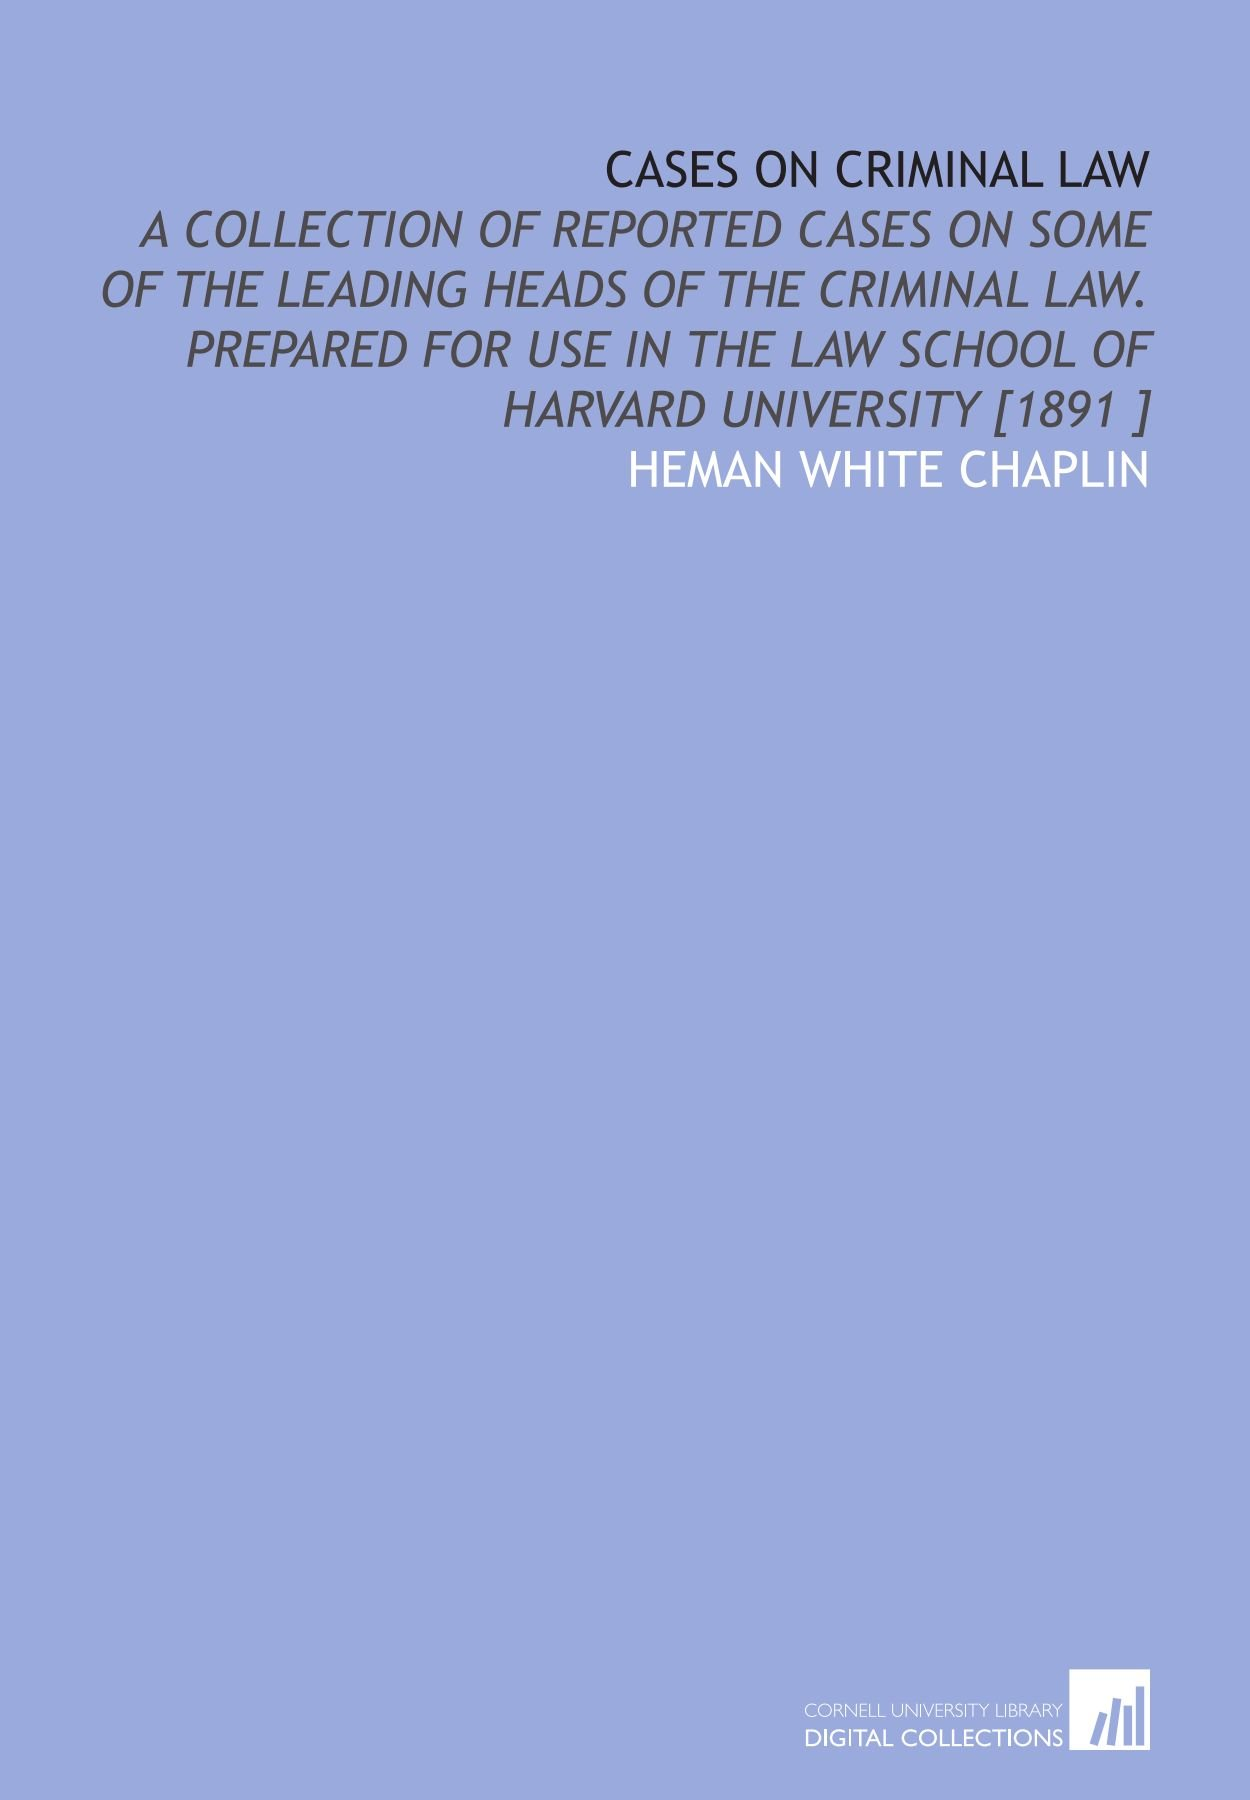 Download Cases on Criminal Law: A Collection of Reported Cases on Some of the Leading Heads of the Criminal Law. Prepared for Use in the Law School of Harvard University [1891 ] pdf